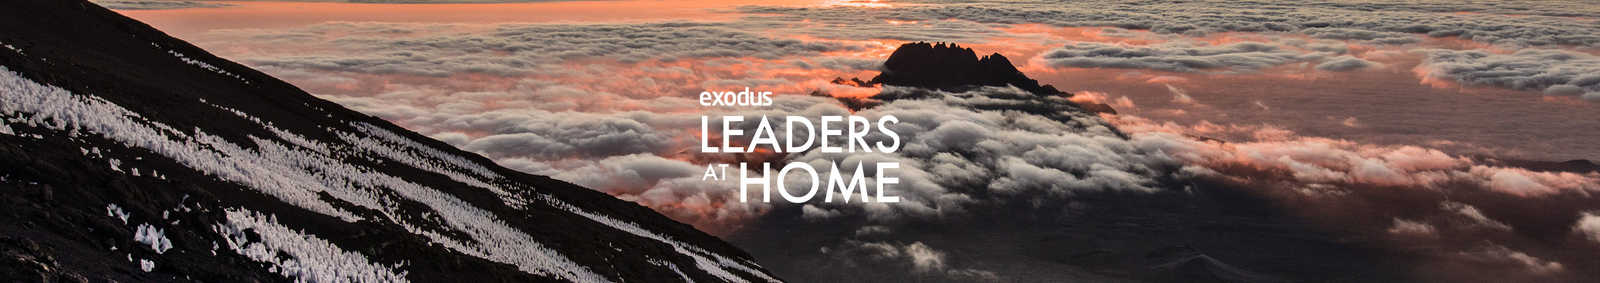 Leaders at home